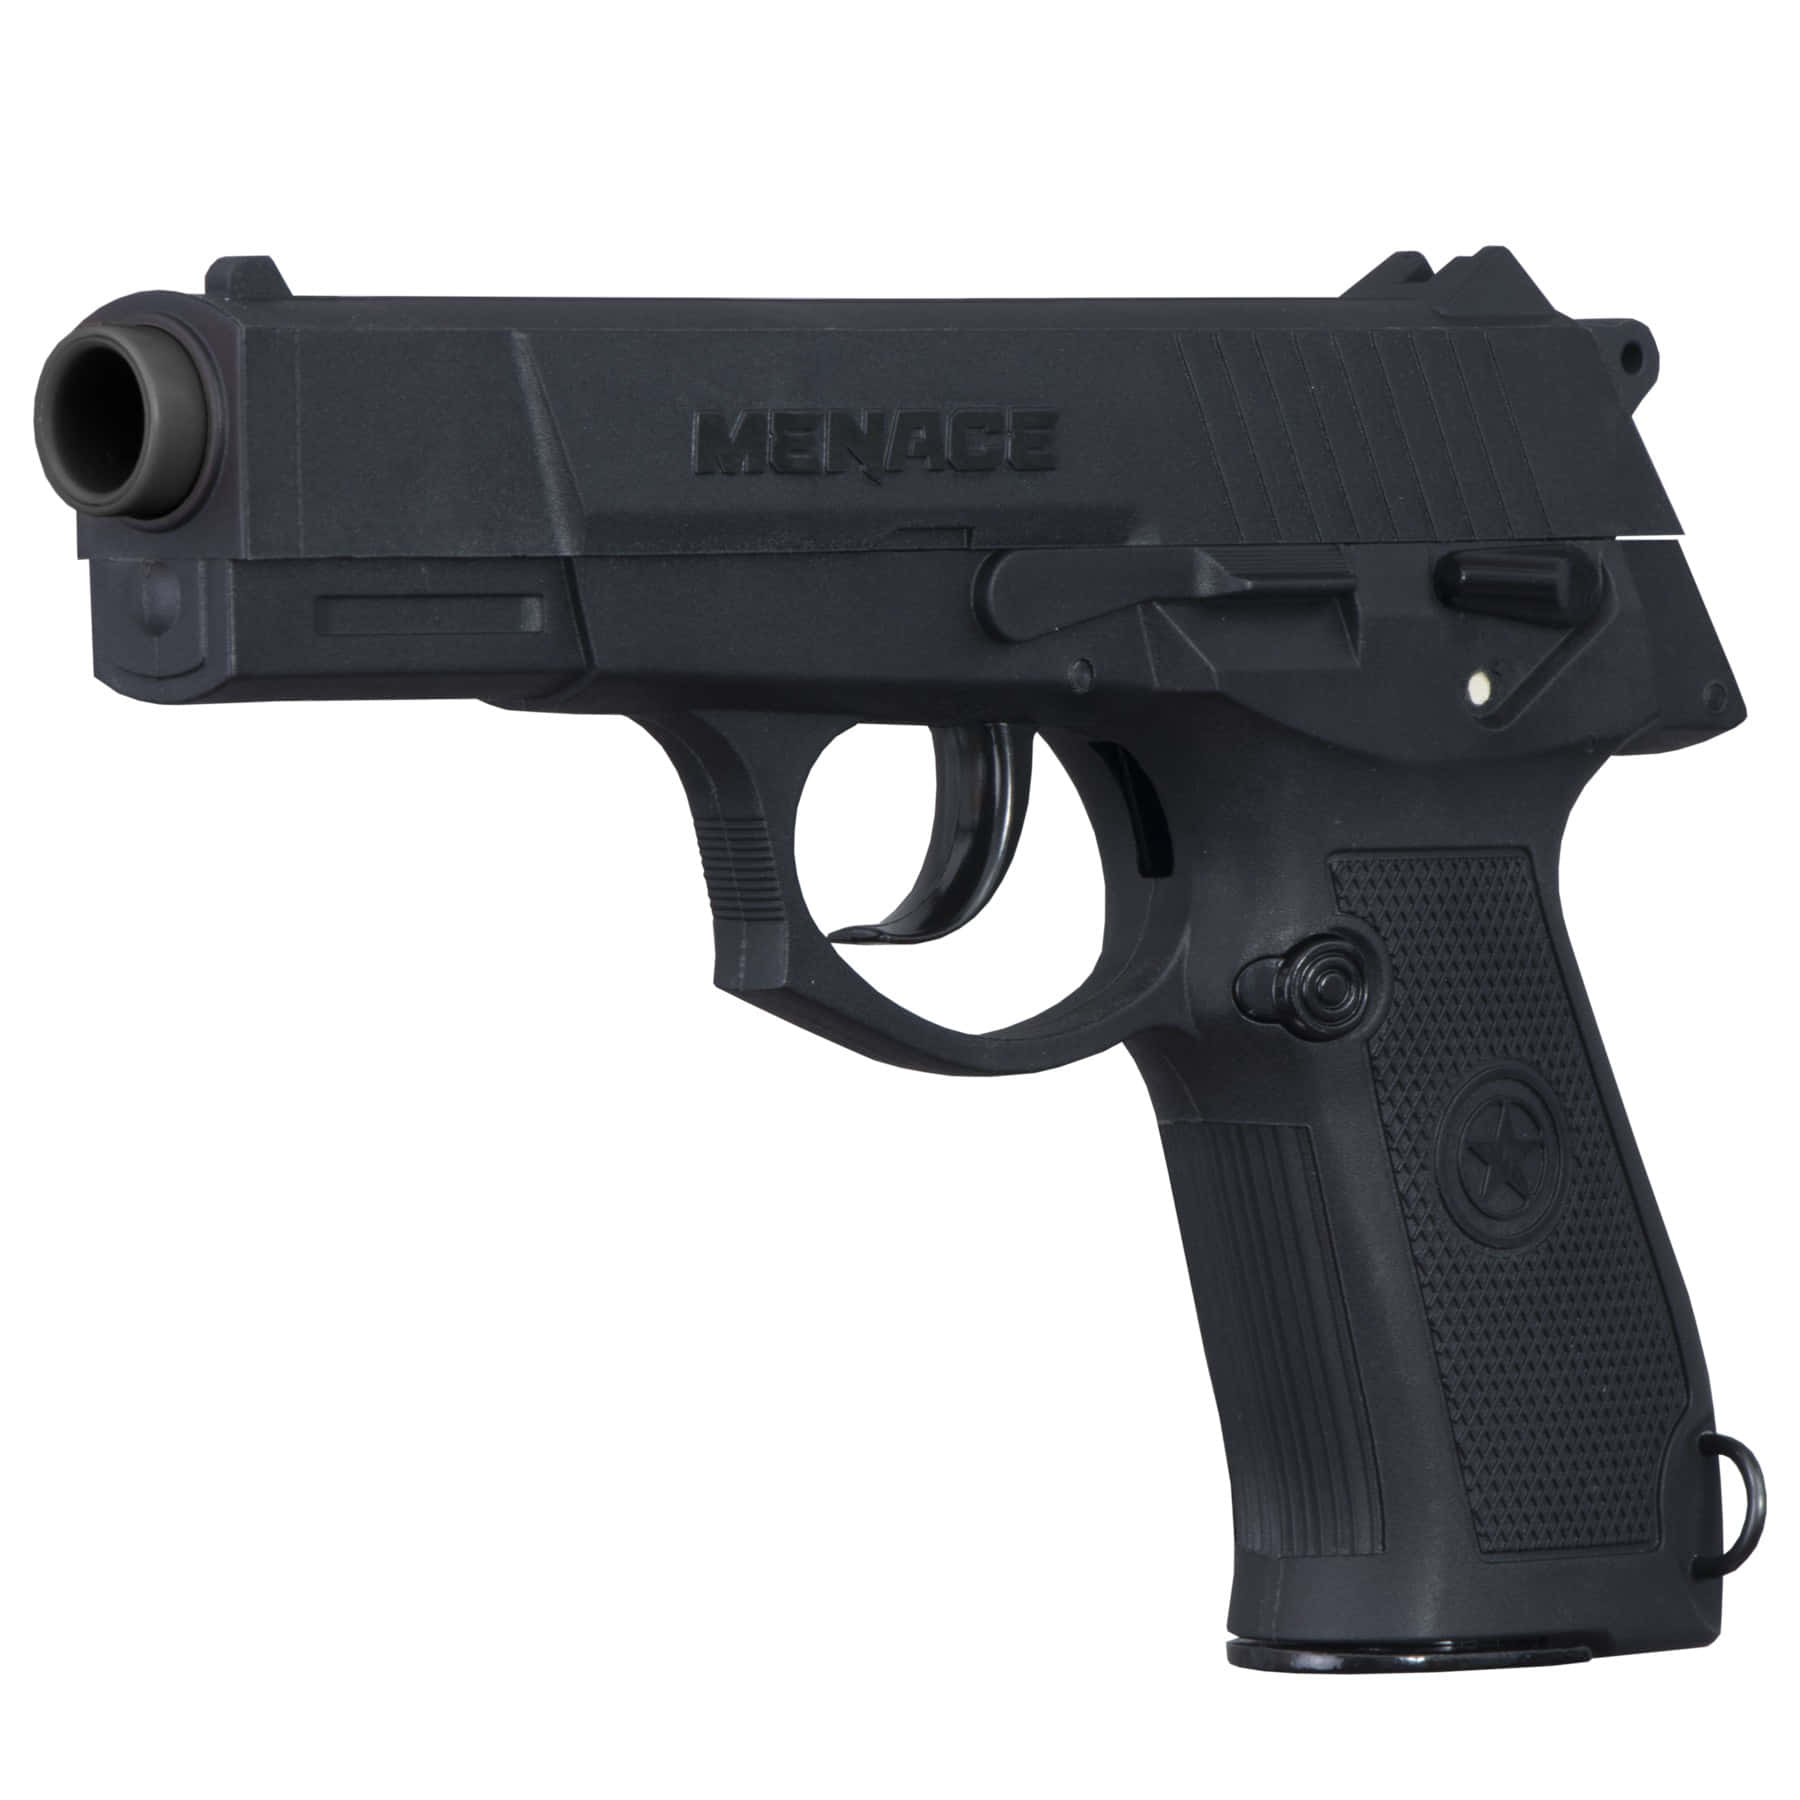 MA735 Pistolet Co2 G.I. Menace Cal. 50 - MA735